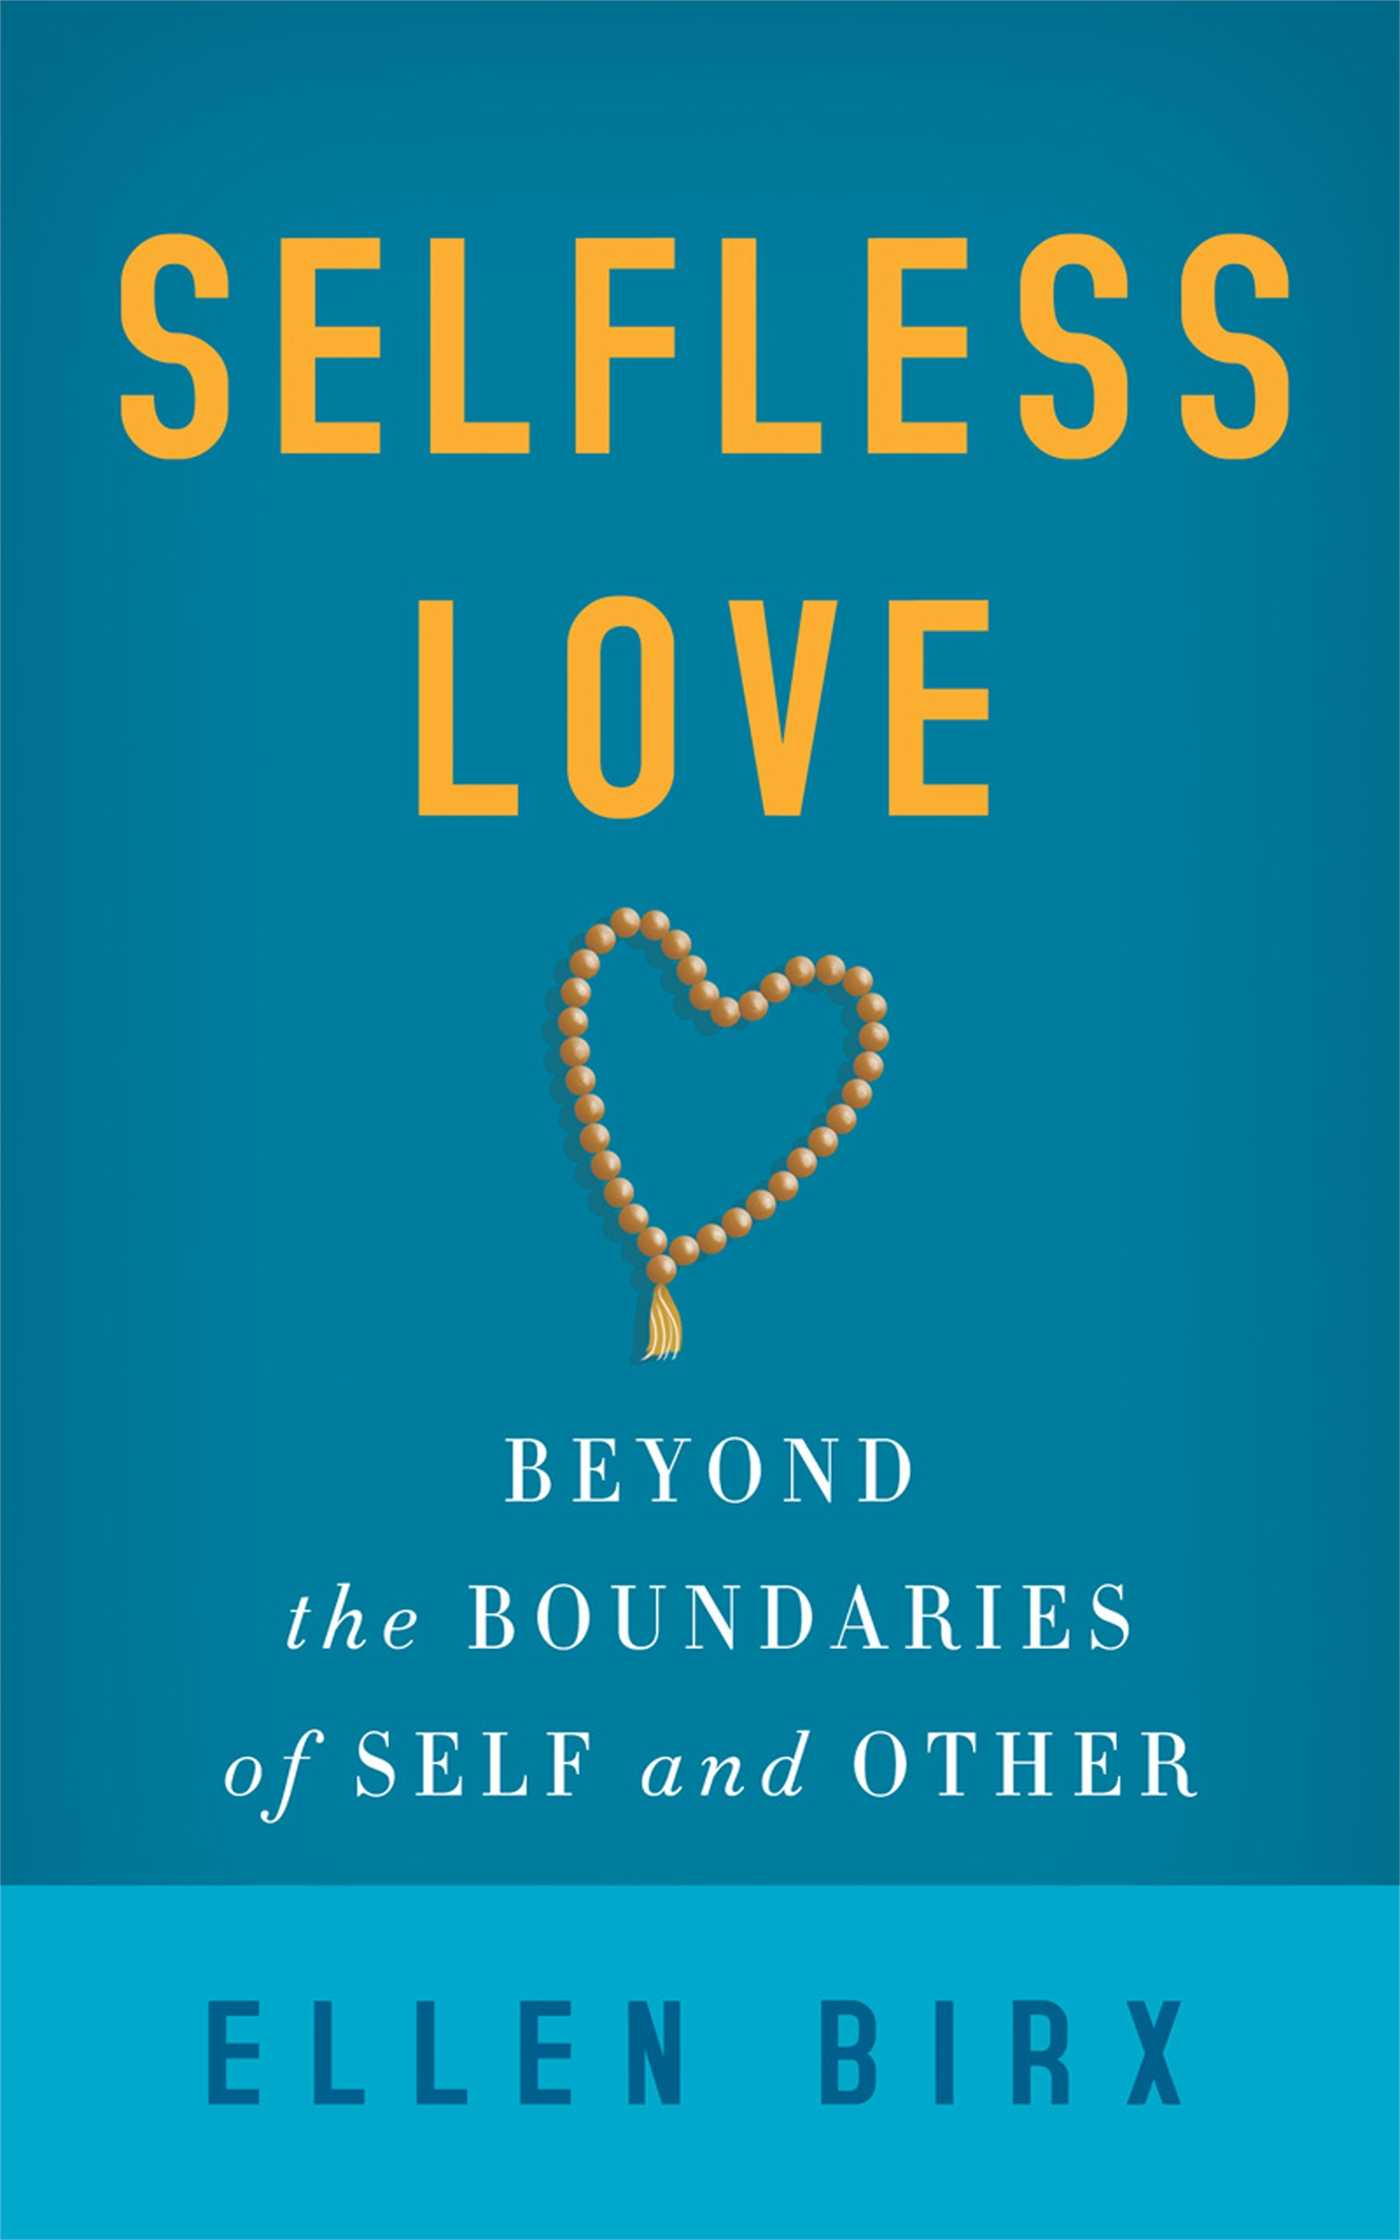 Selfless Love, the Gift of the Magi Essay